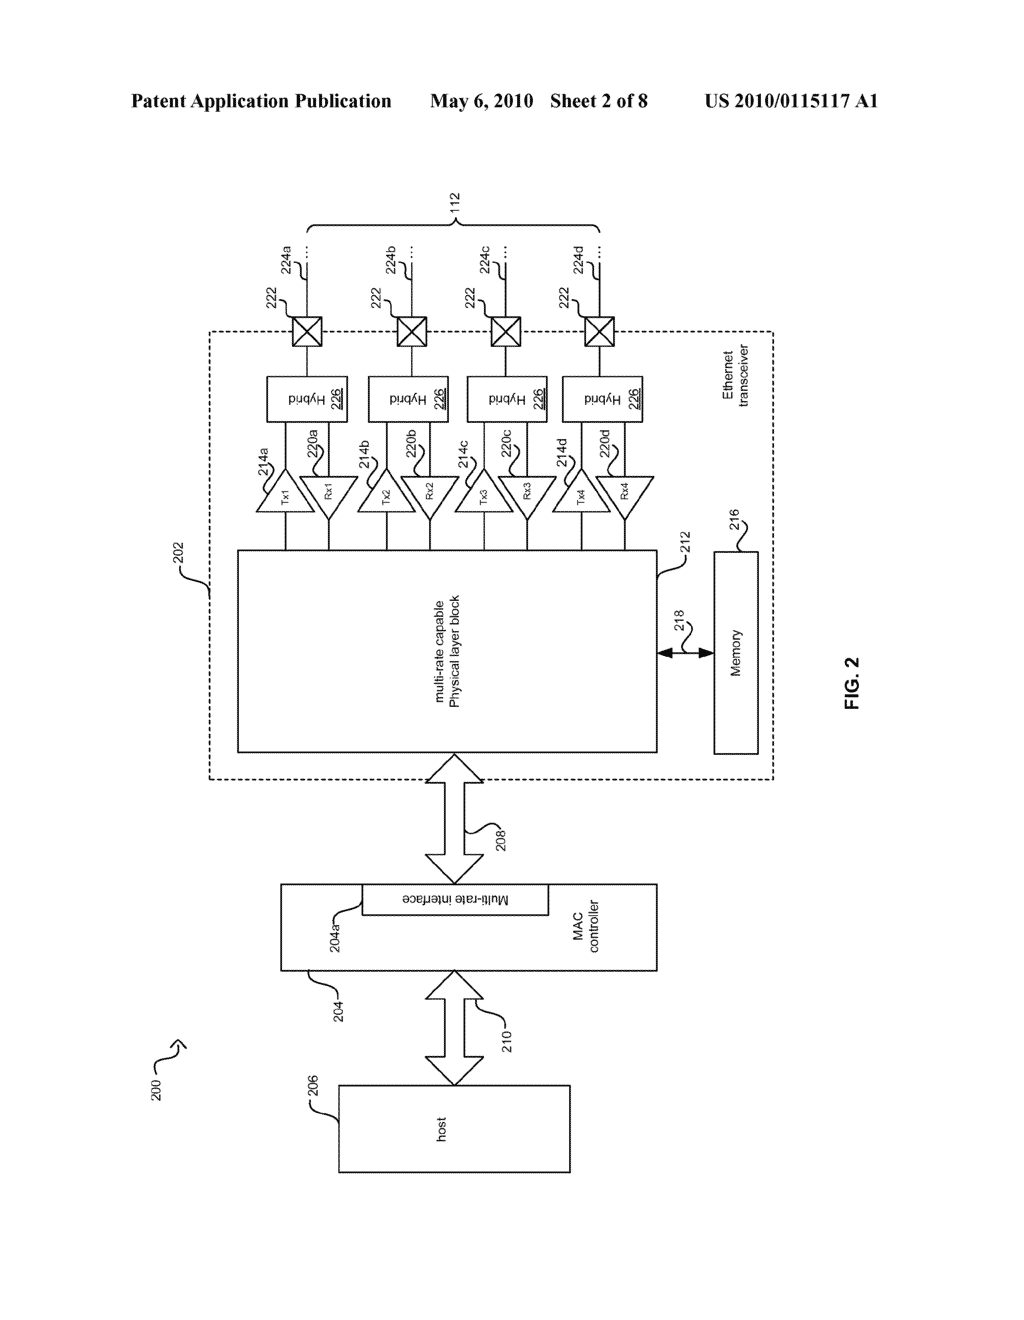 Method And System For Packet Based Signaling Between A MAC And A PHY To Manage Energy Efficient Network Devices And/Or Protocols - diagram, schematic, and image 03